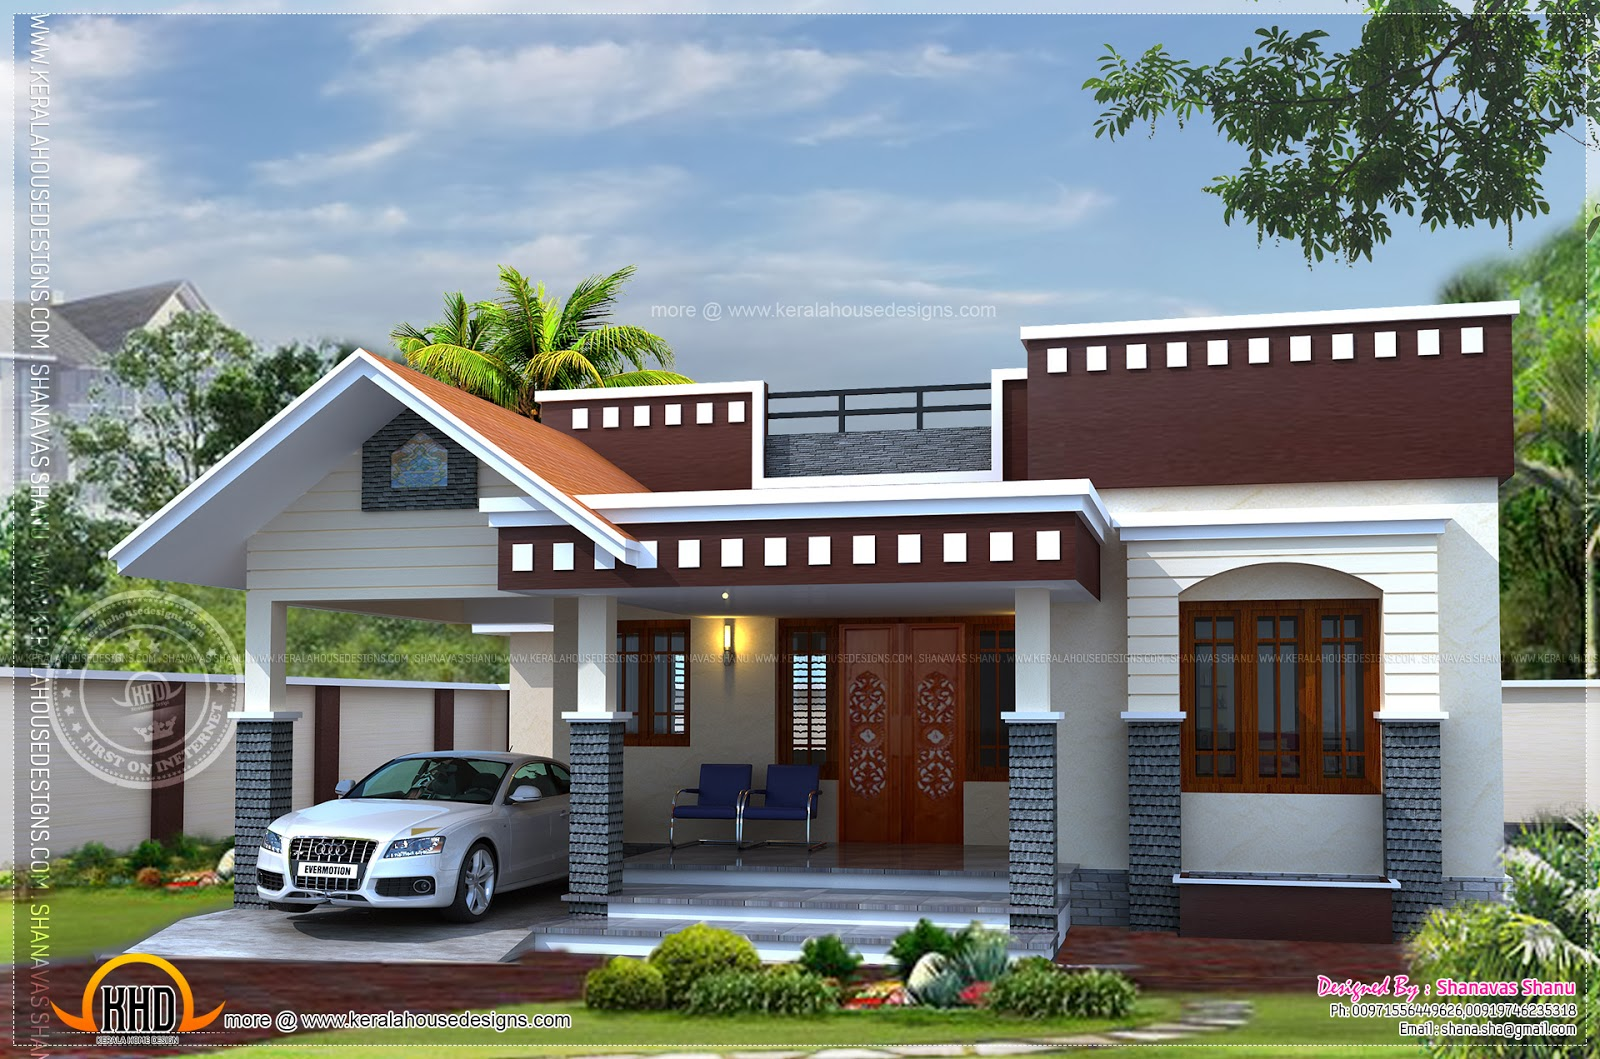 Home plan of small house kerala home design and floor plans for House plans with photos in kerala style